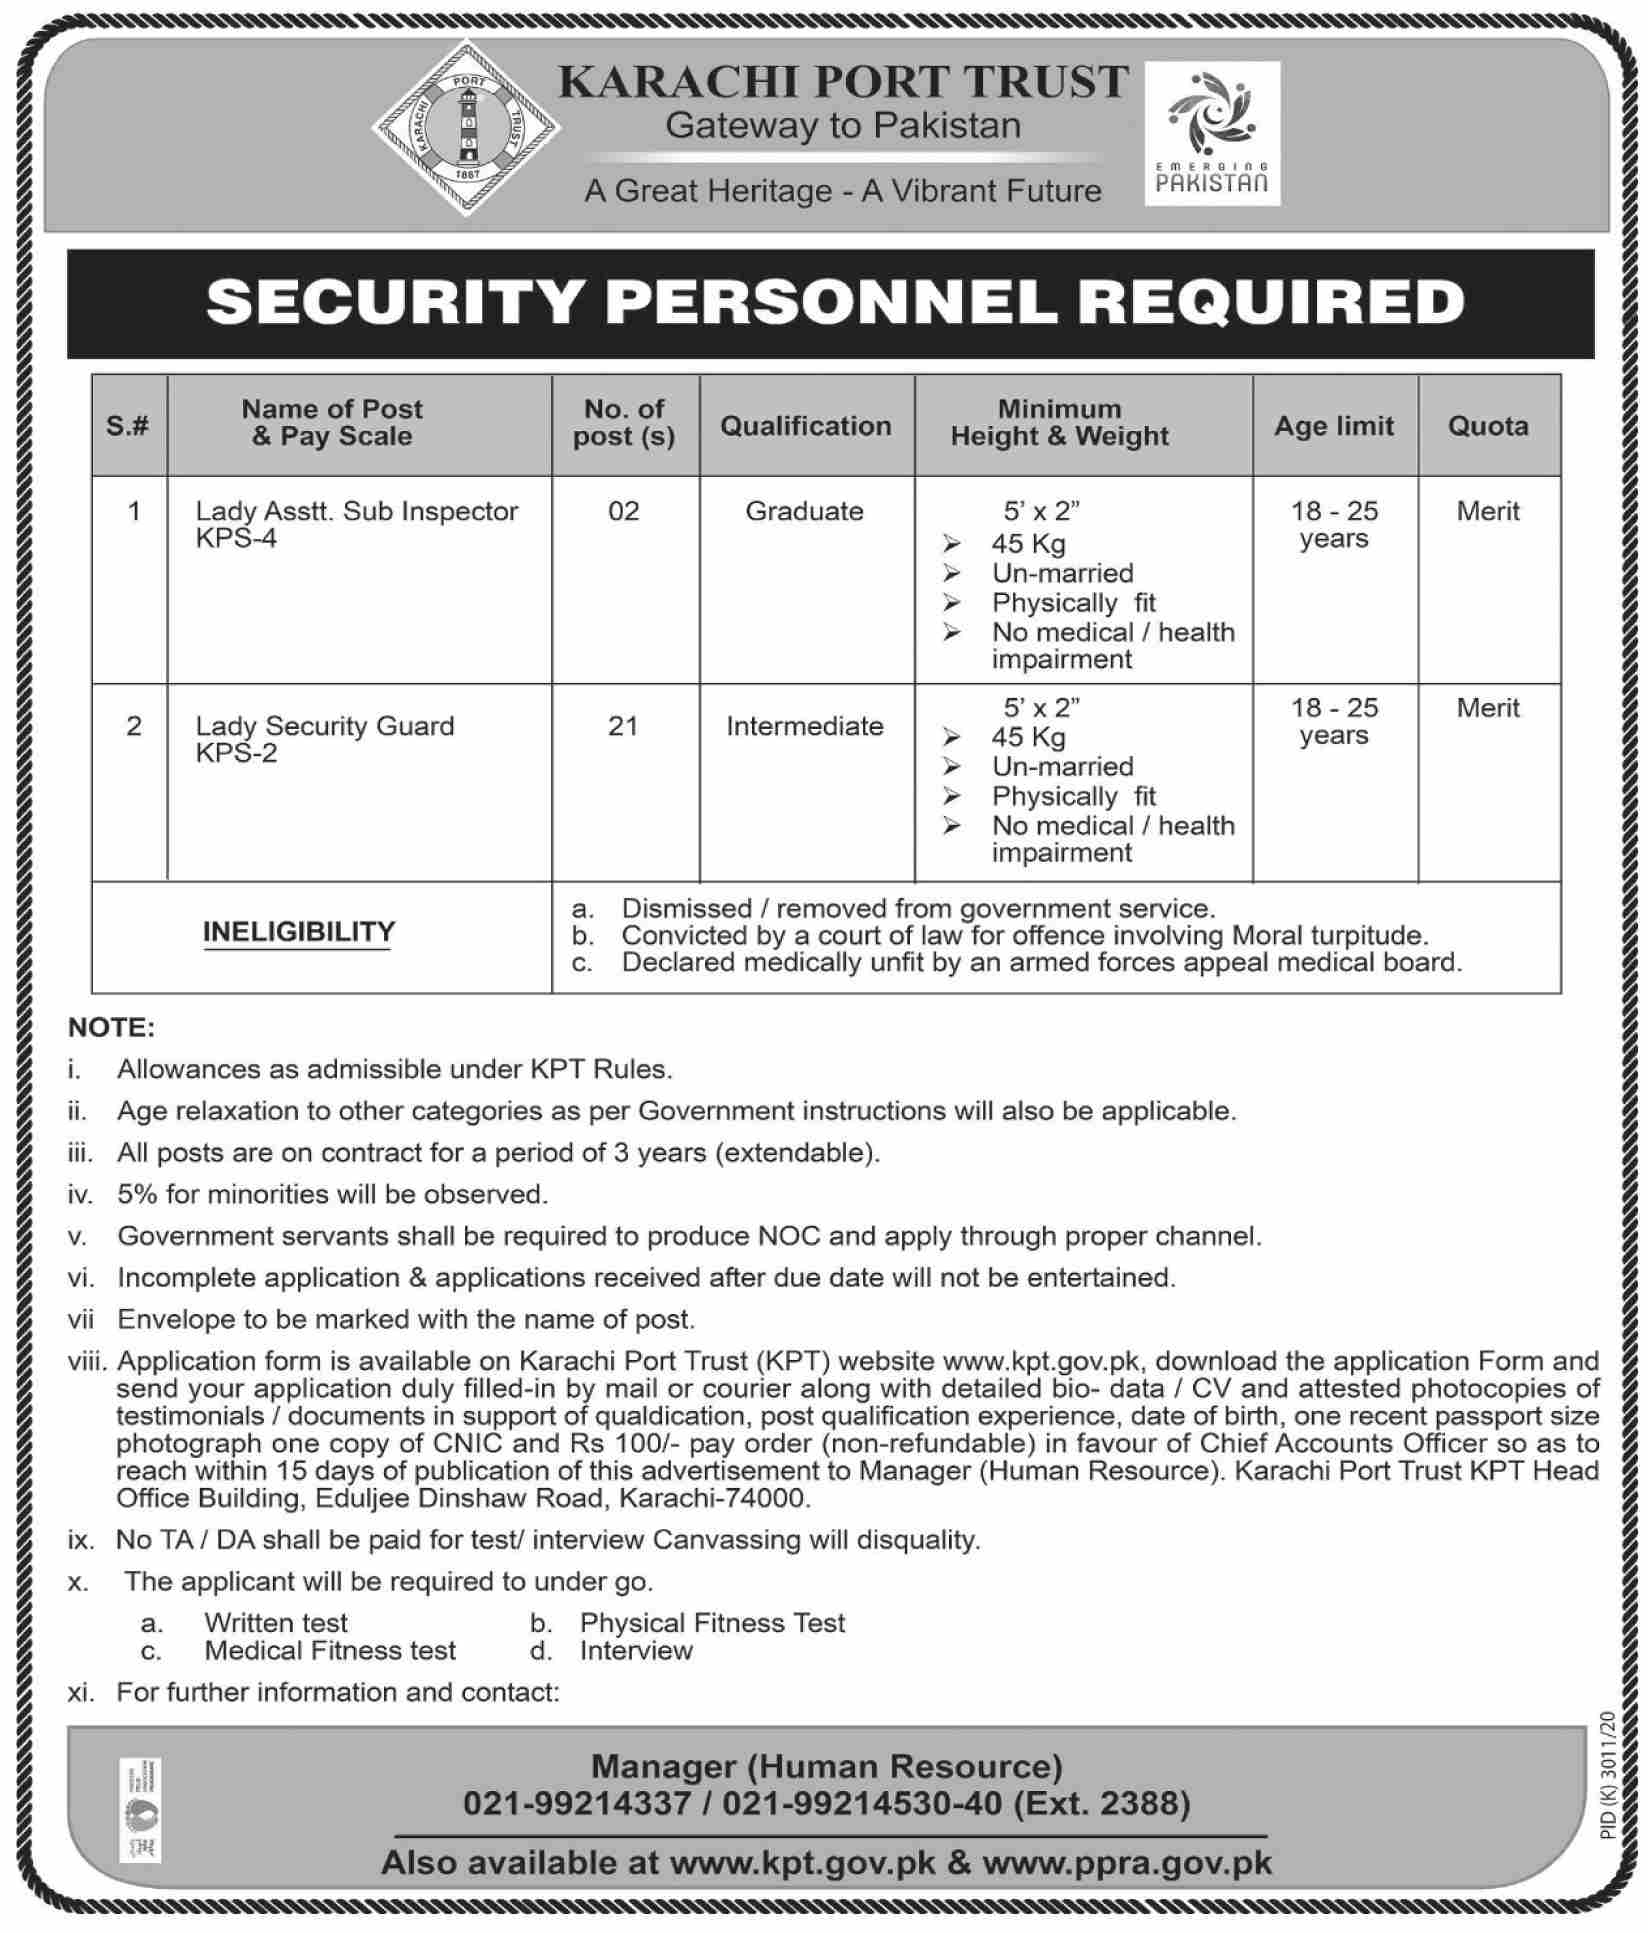 This page is about Karachi Port Trust (KPT) Jobs May 2021 Latest Advertisment. Karachi Port Trust (KPT) invites applications for the posts announced on a contact / permanent basis from suitable candidates for the following positions such as Lady Asstt Sub Inspector, Lady Security Guard. These vacancies are published in Dawn Newspaper, one of the best News paper of Pakistan. This advertisement has pulibhsed on 08 May 2021 and Last Date to apply is 22 May 2021.